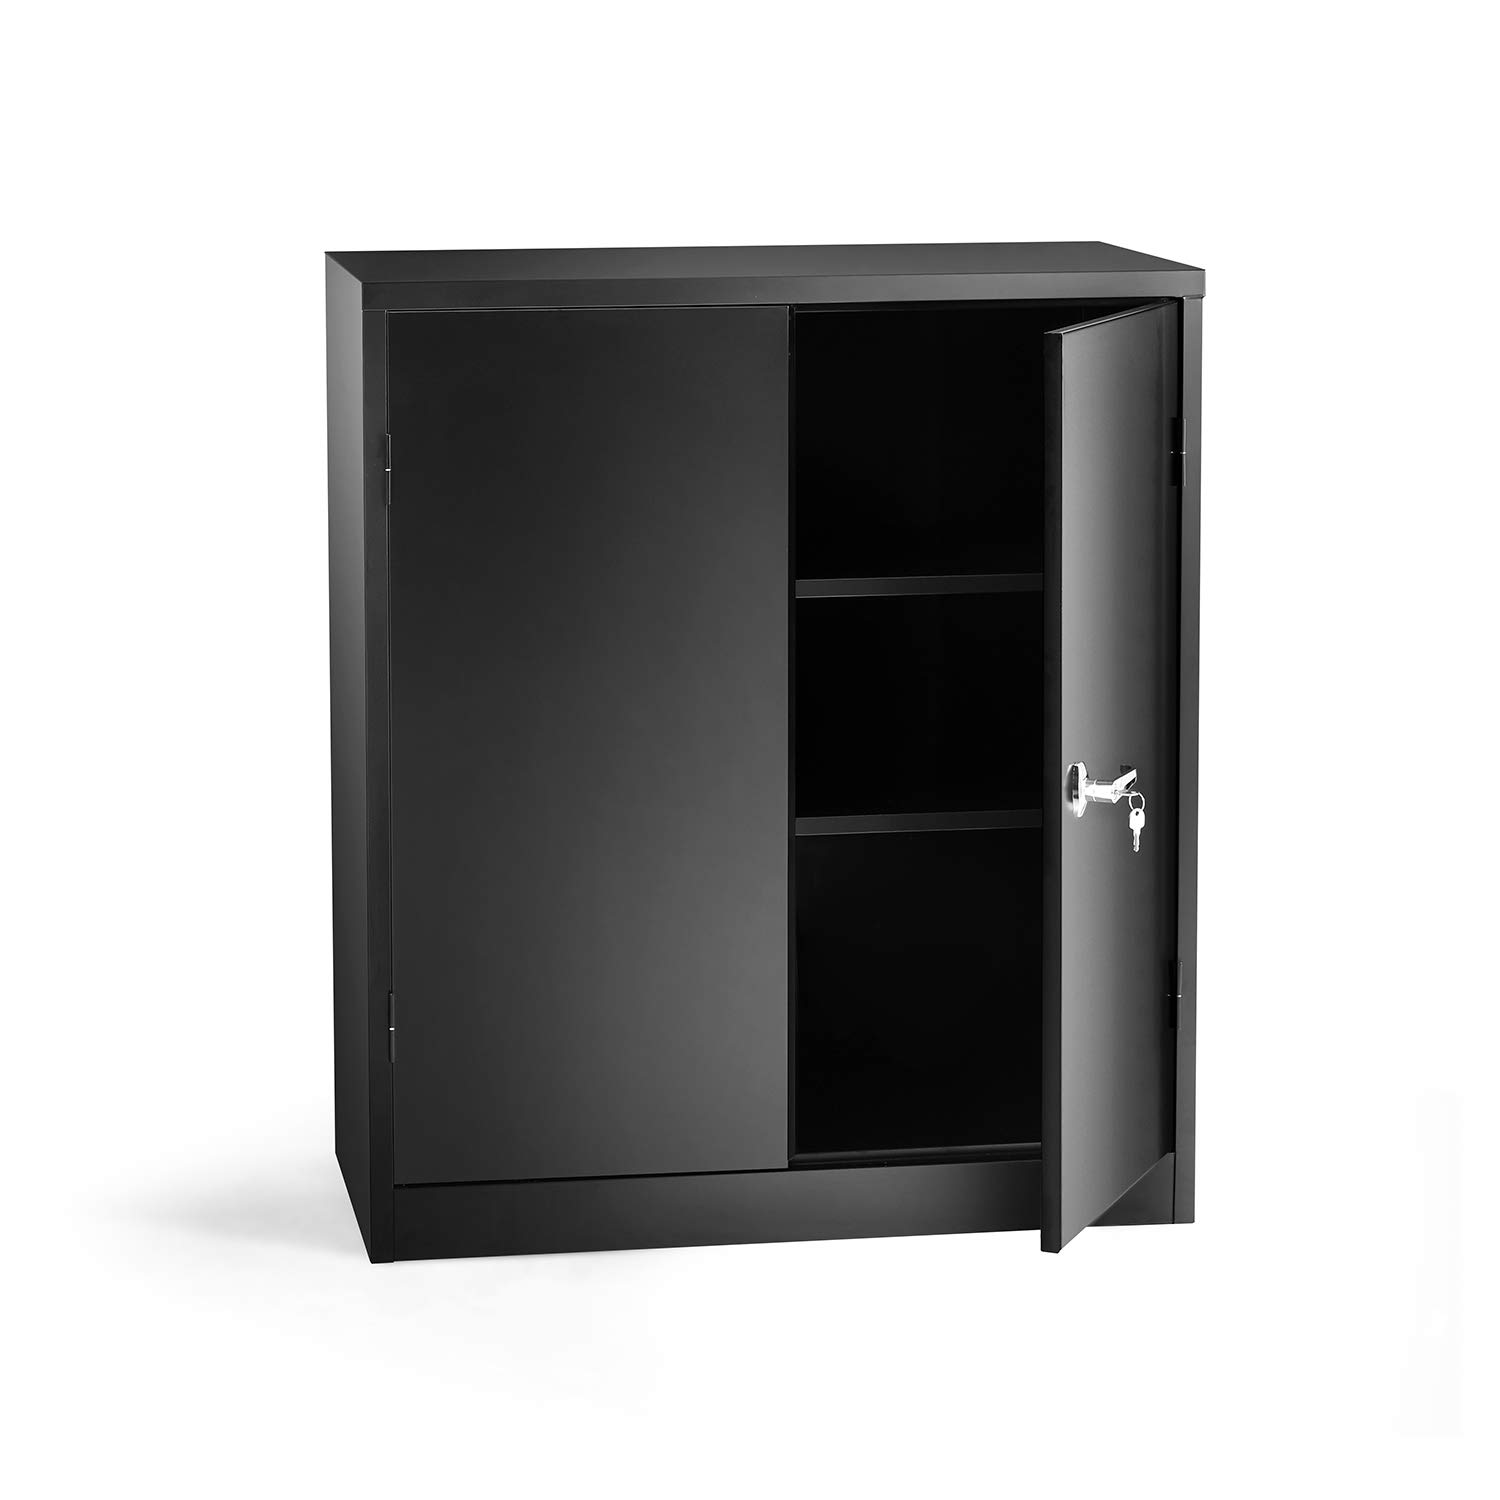 Superday Steel SnapIt Counter Cabinet 3 Shelf Metal Storage Cabinet with 2 Adjustable Shelves Black